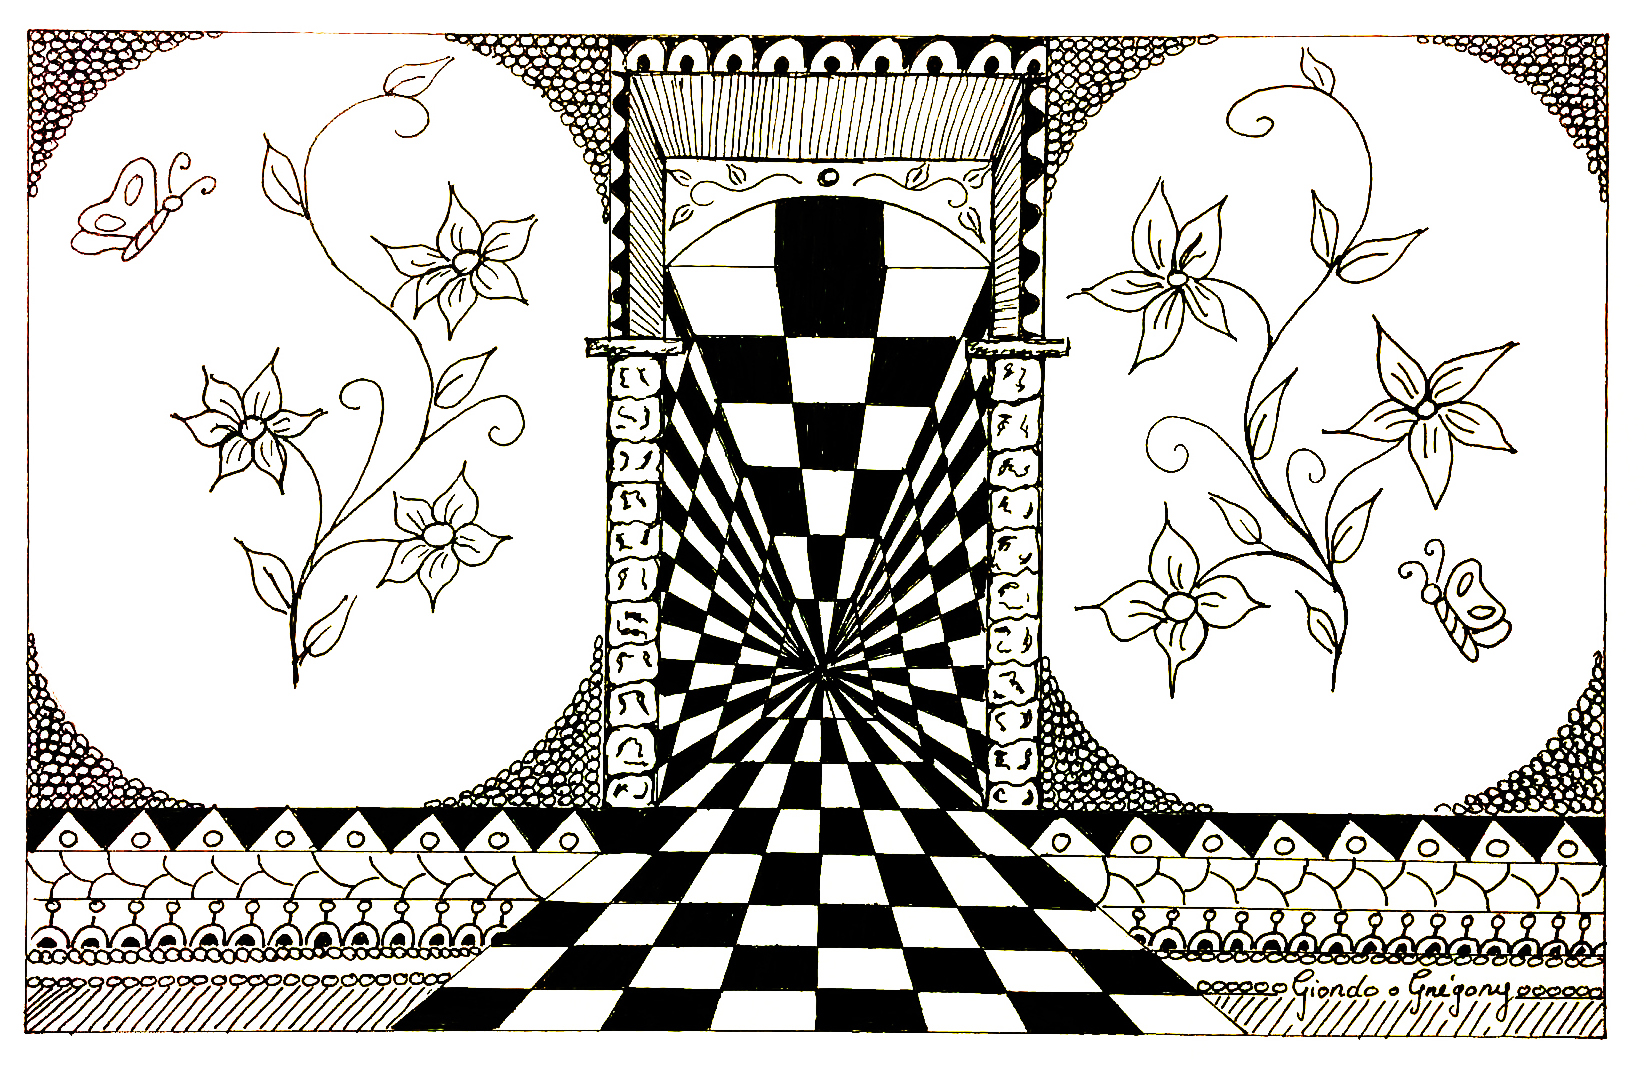 Disegni da colorare per adulti : Op Art - 27